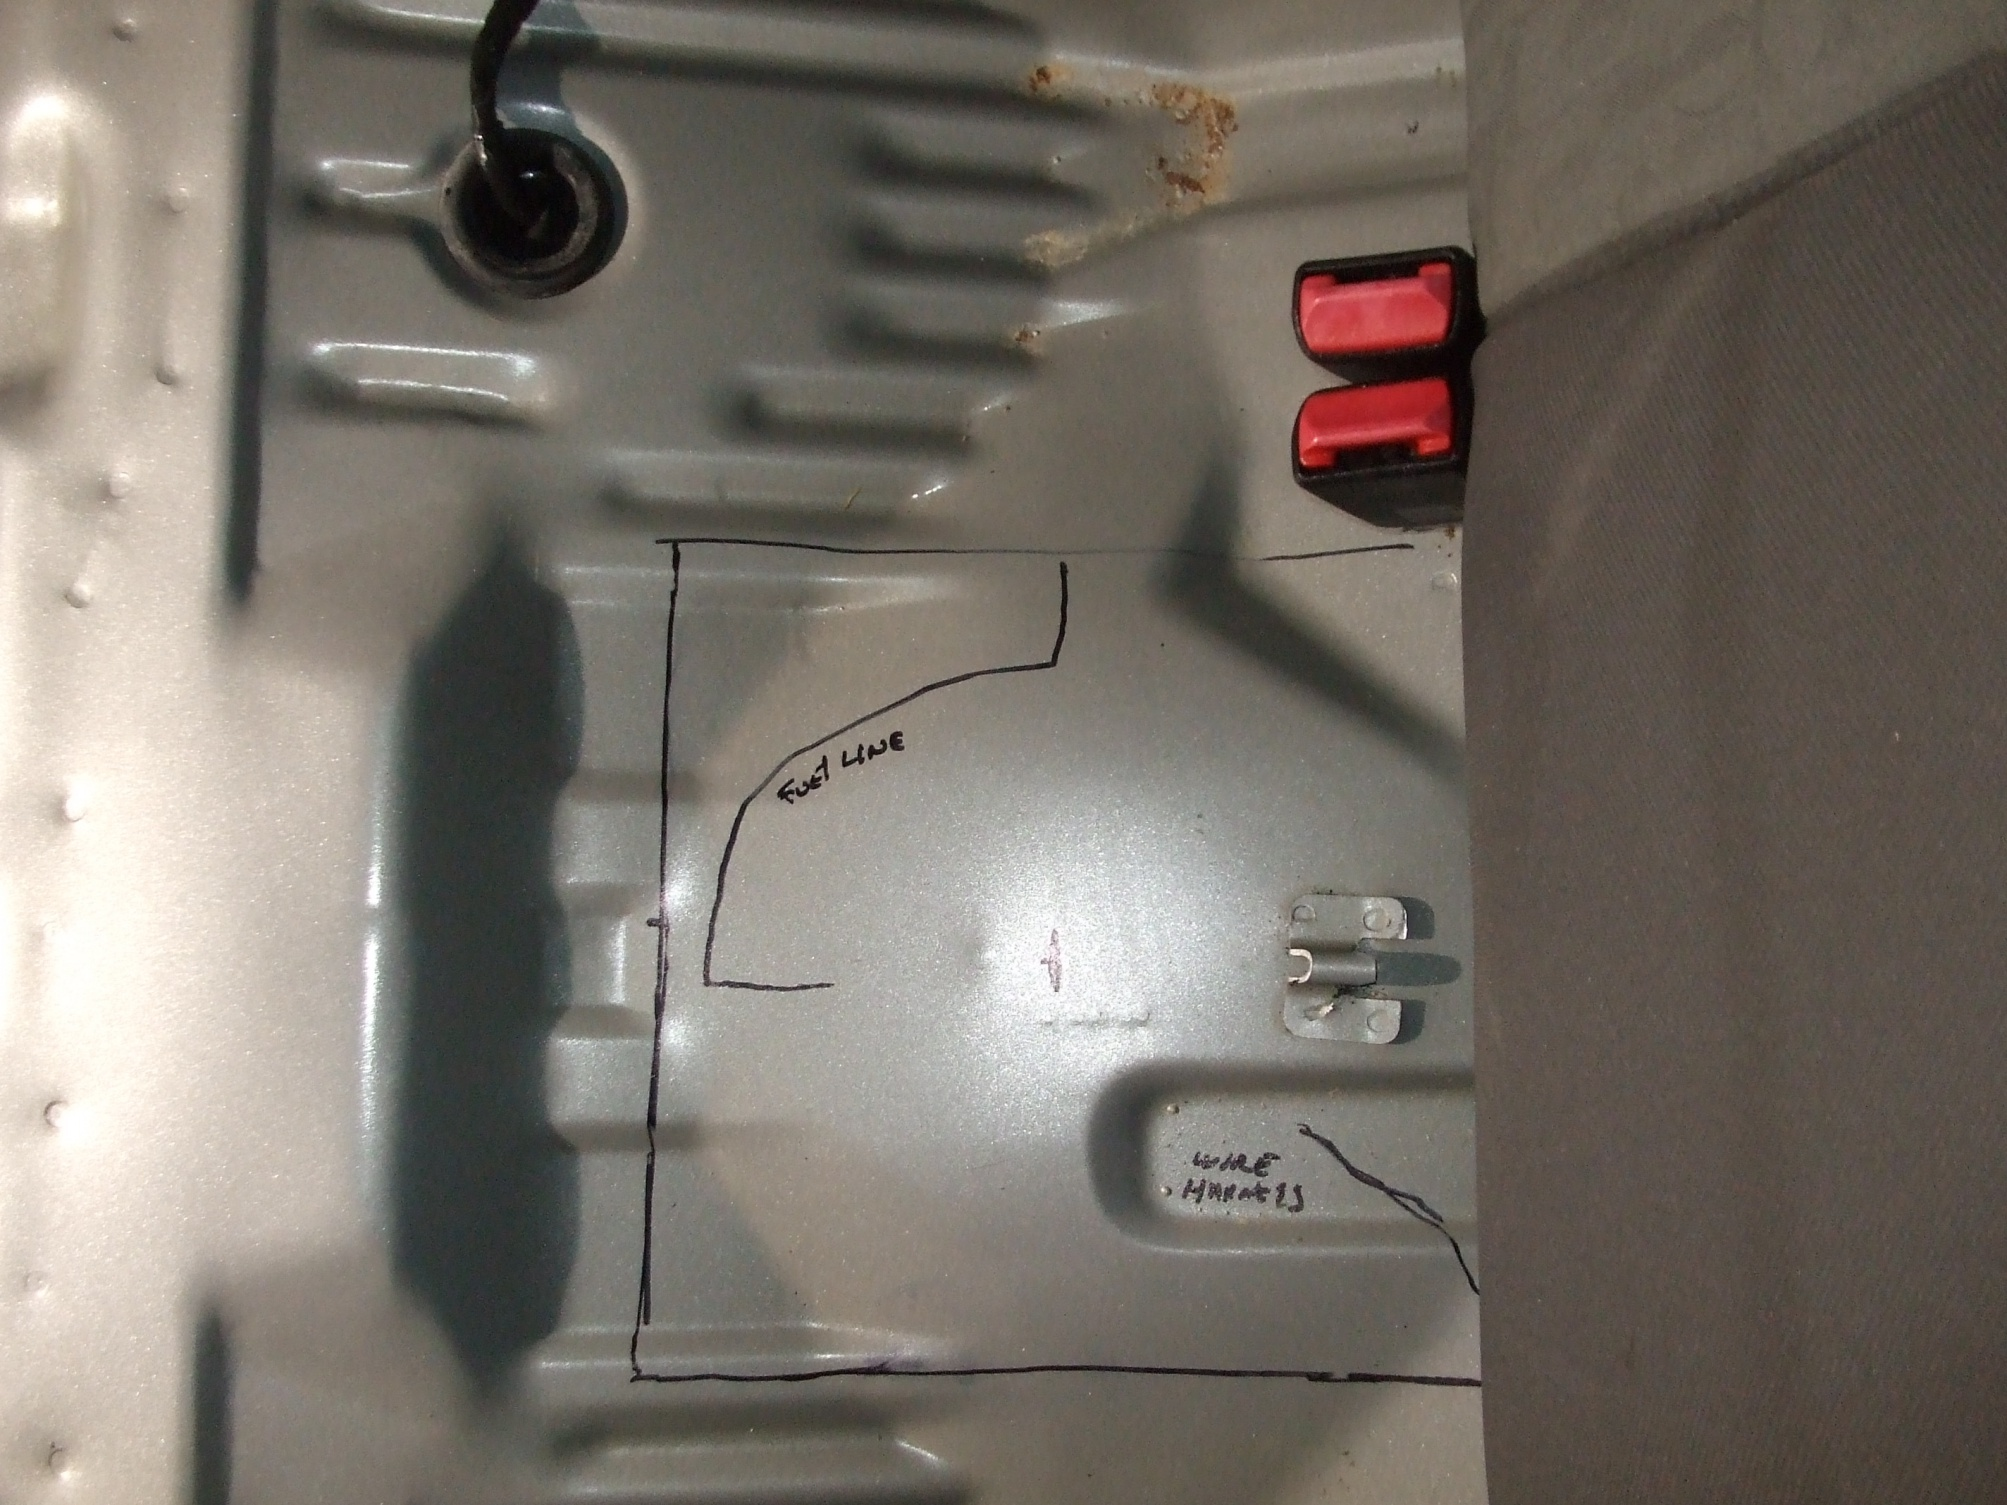 2005 zx4 fuel pump access cutout - actual location